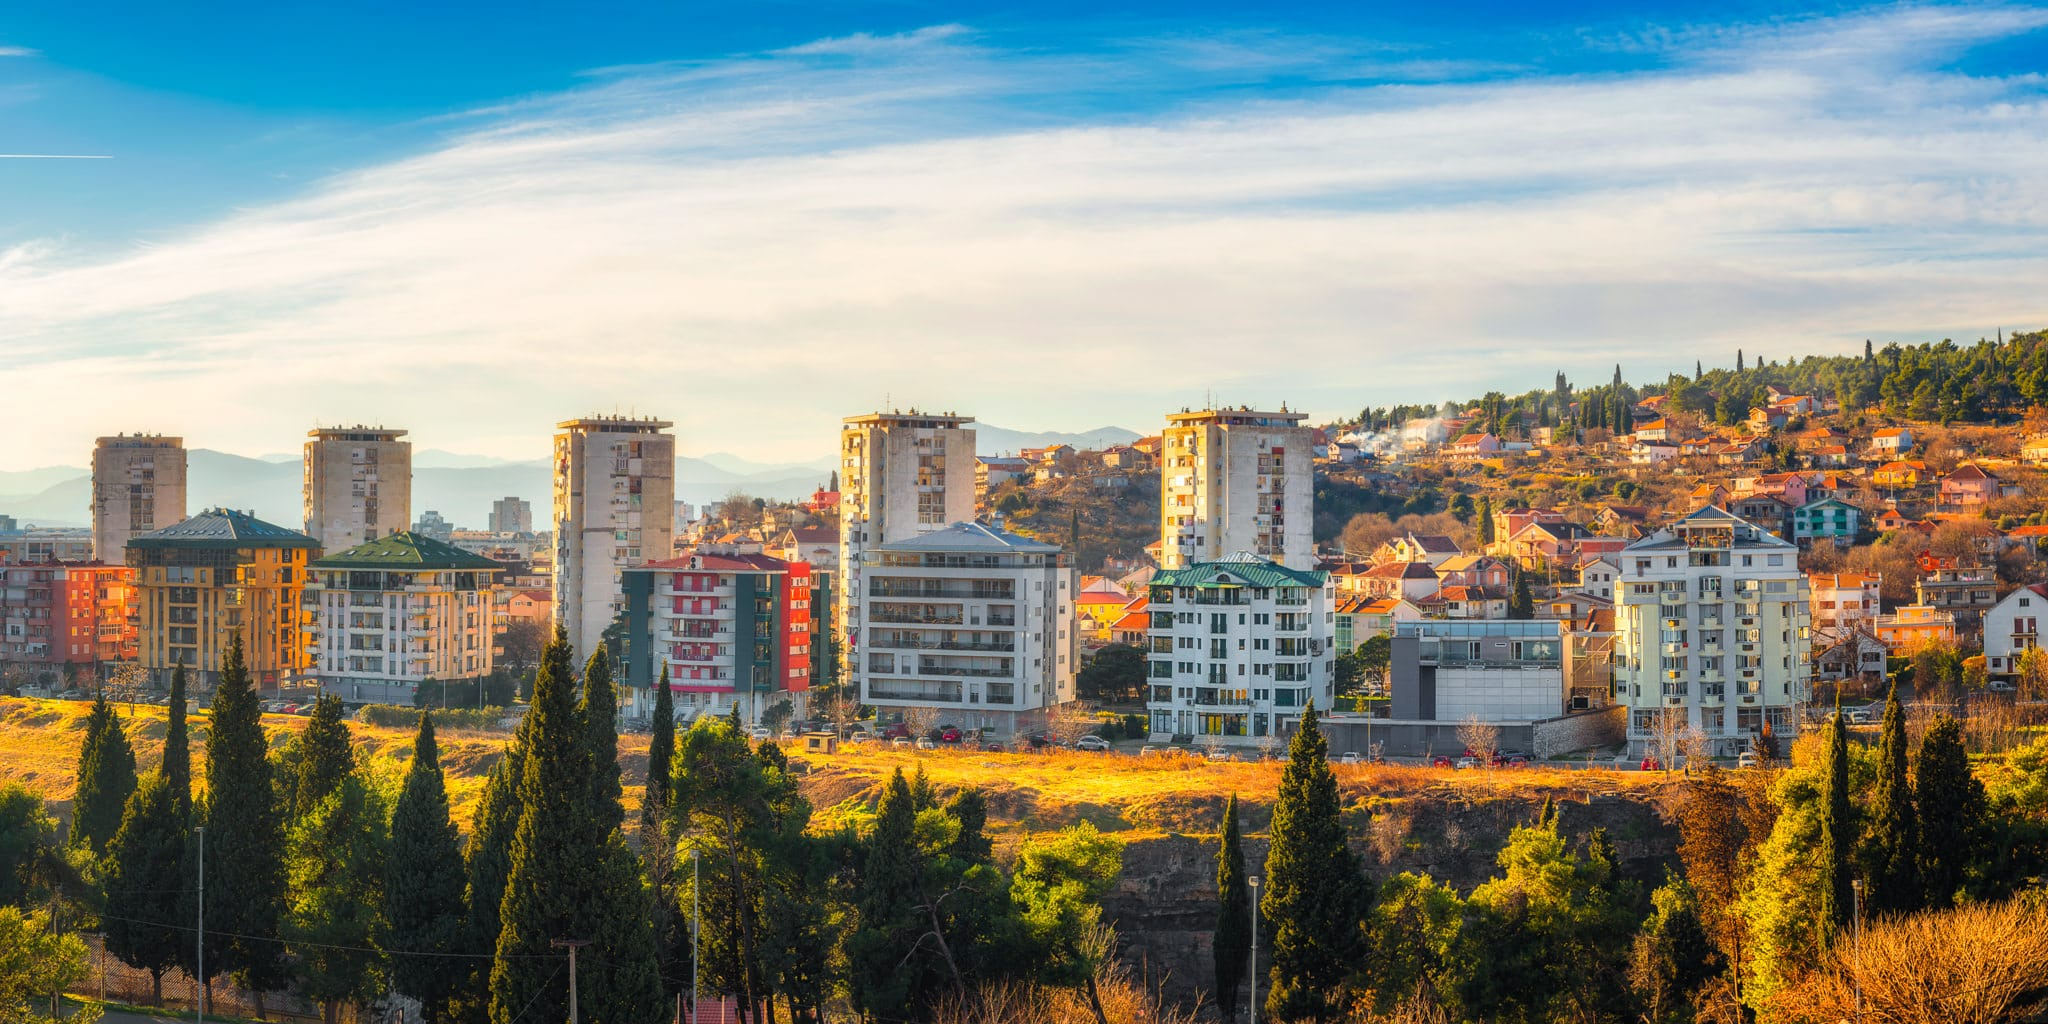 Podgorica Panorama with the Montenegrin Mountains in the background.